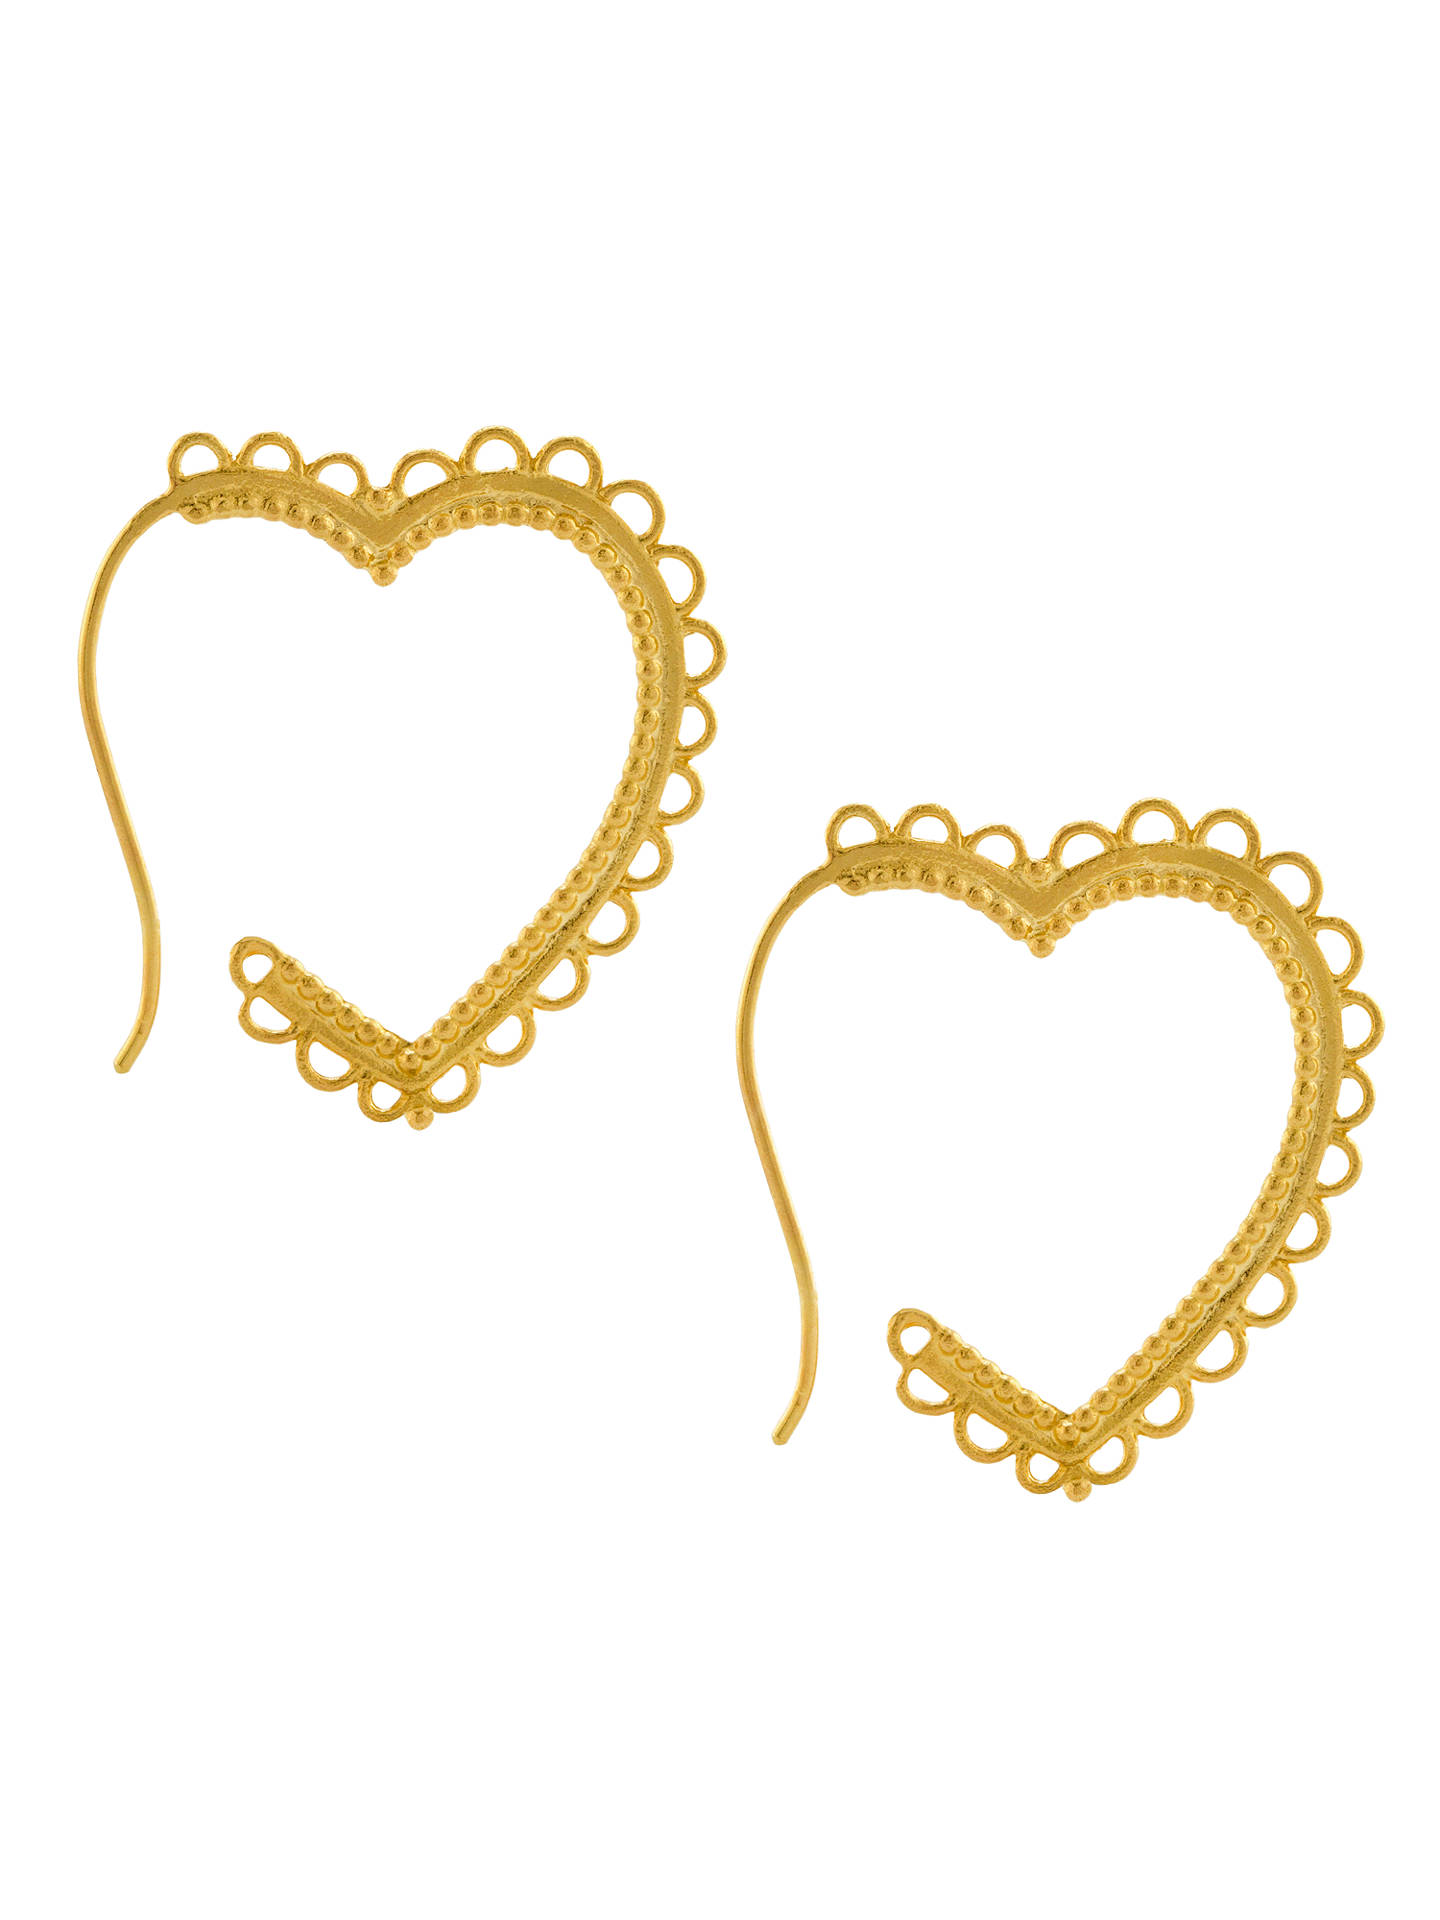 BuyAlex Monroe 22ct Gold Vermeil Lace Edge Heart Hoop Earrings, Gold Online at johnlewis.com